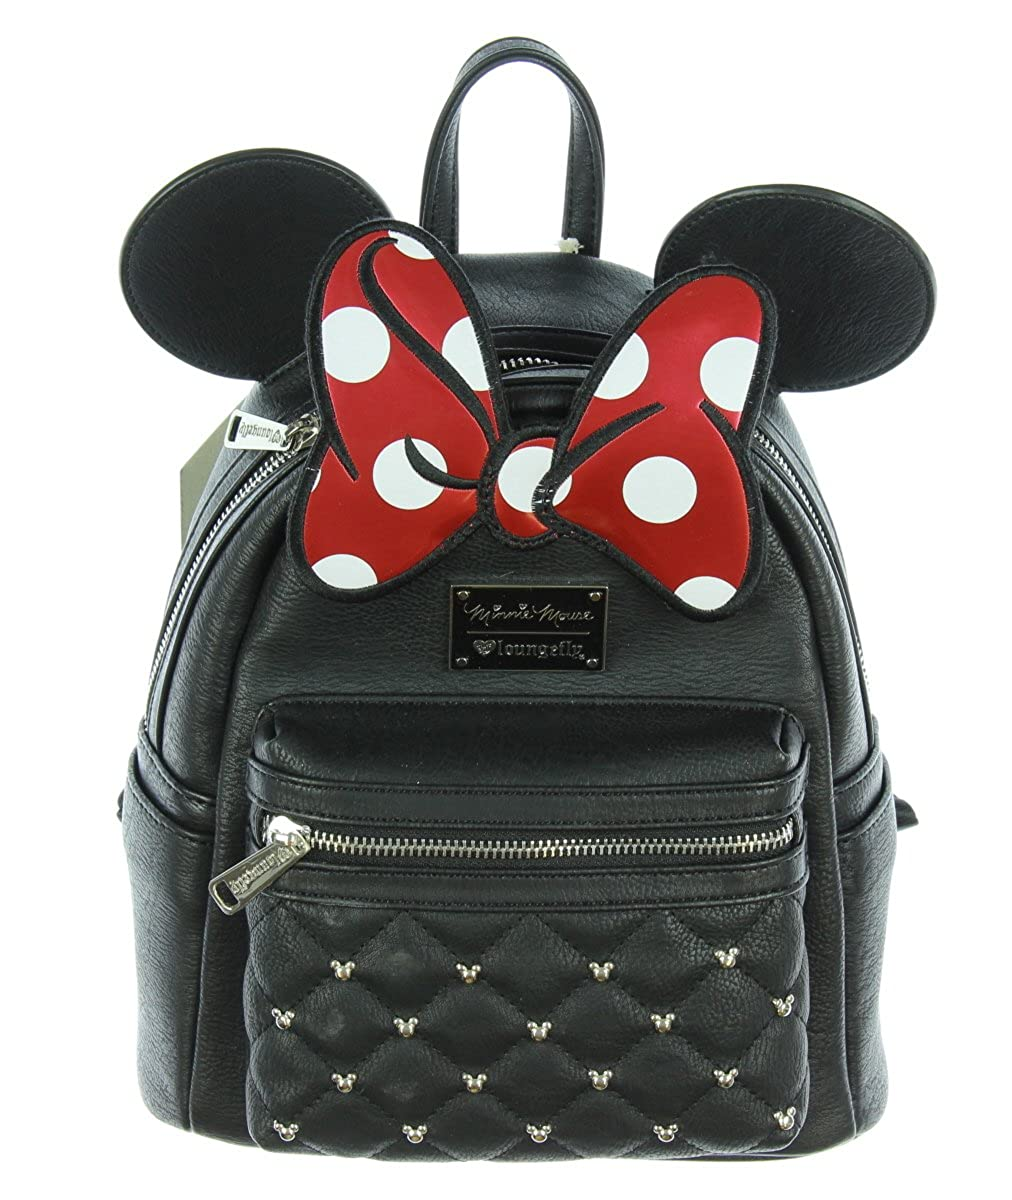 7f81bd4cfa6 Loungefly Mickey Mouse Faux Leather Mini Backpack- Fenix Toulouse ...